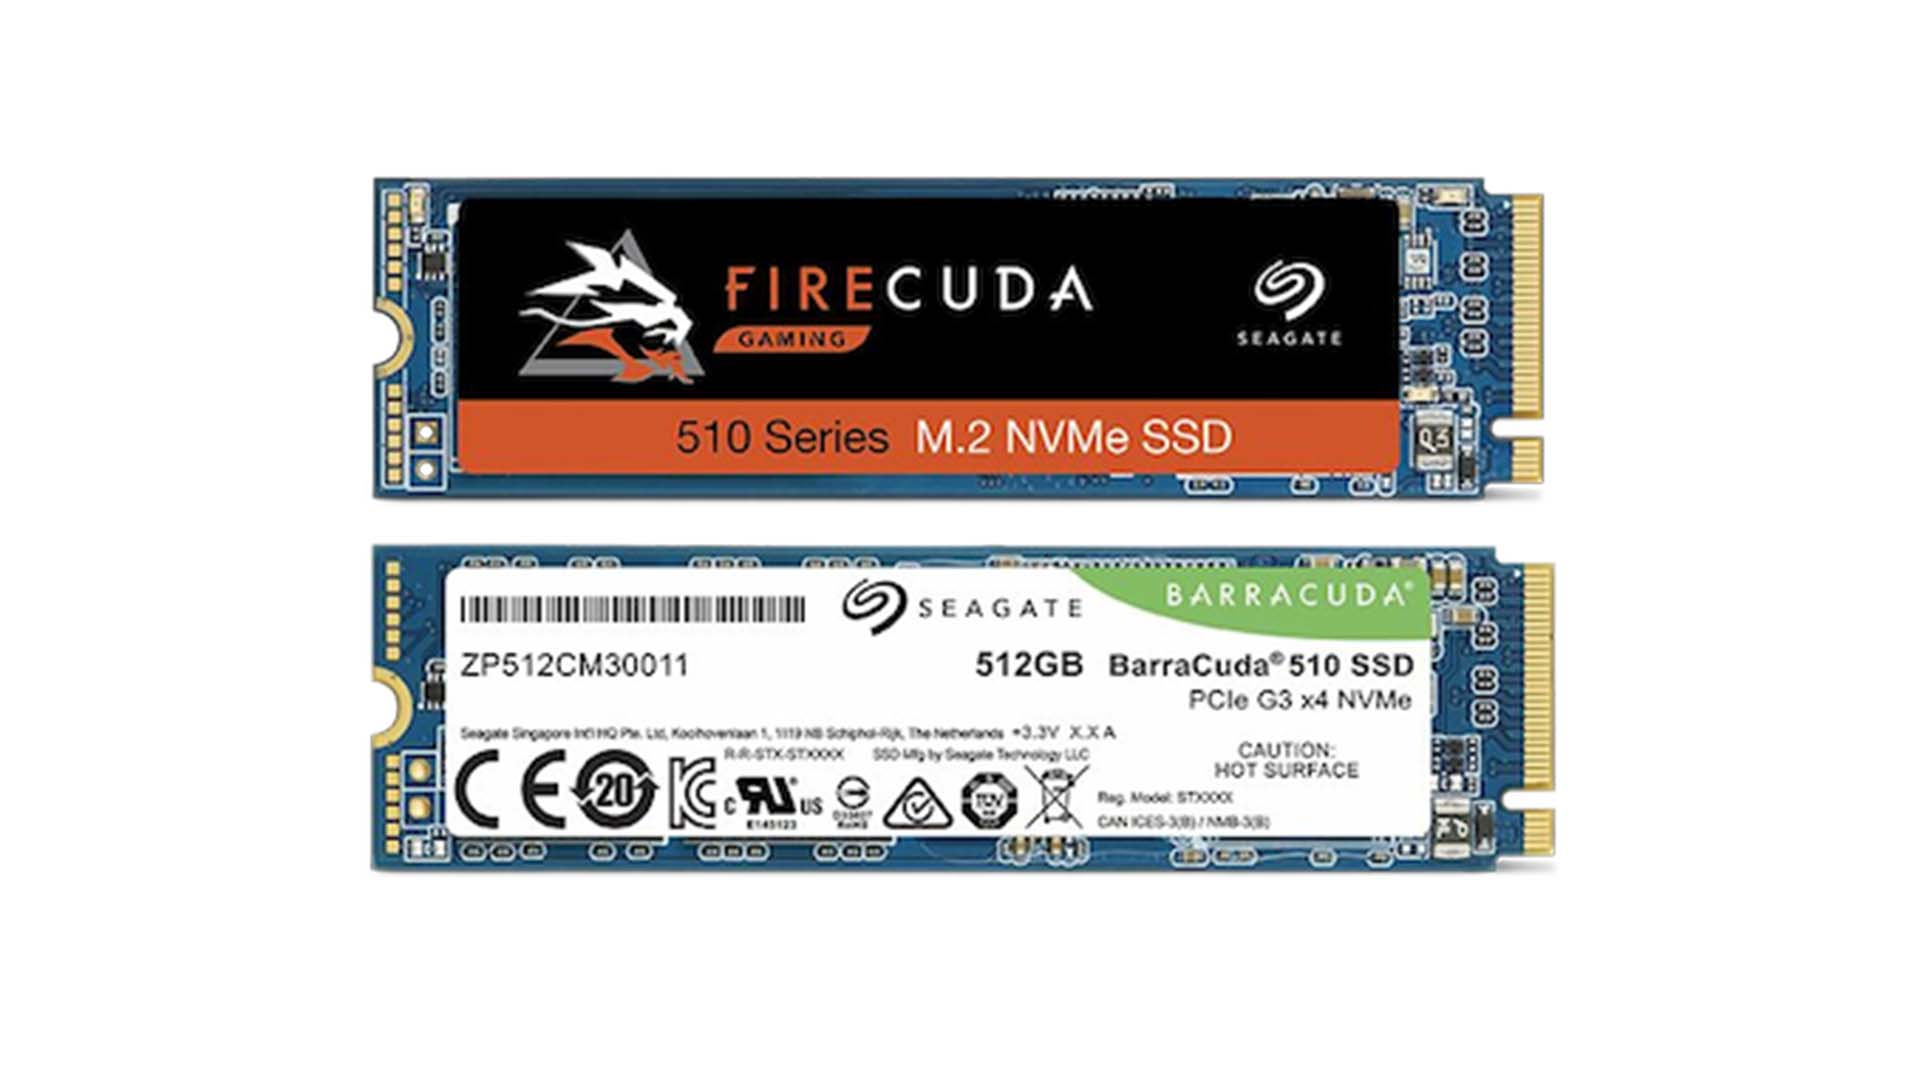 Barracuda 510 和 Firecuda 510 M.2 NVMe SSD 加入 Seagate 產品線